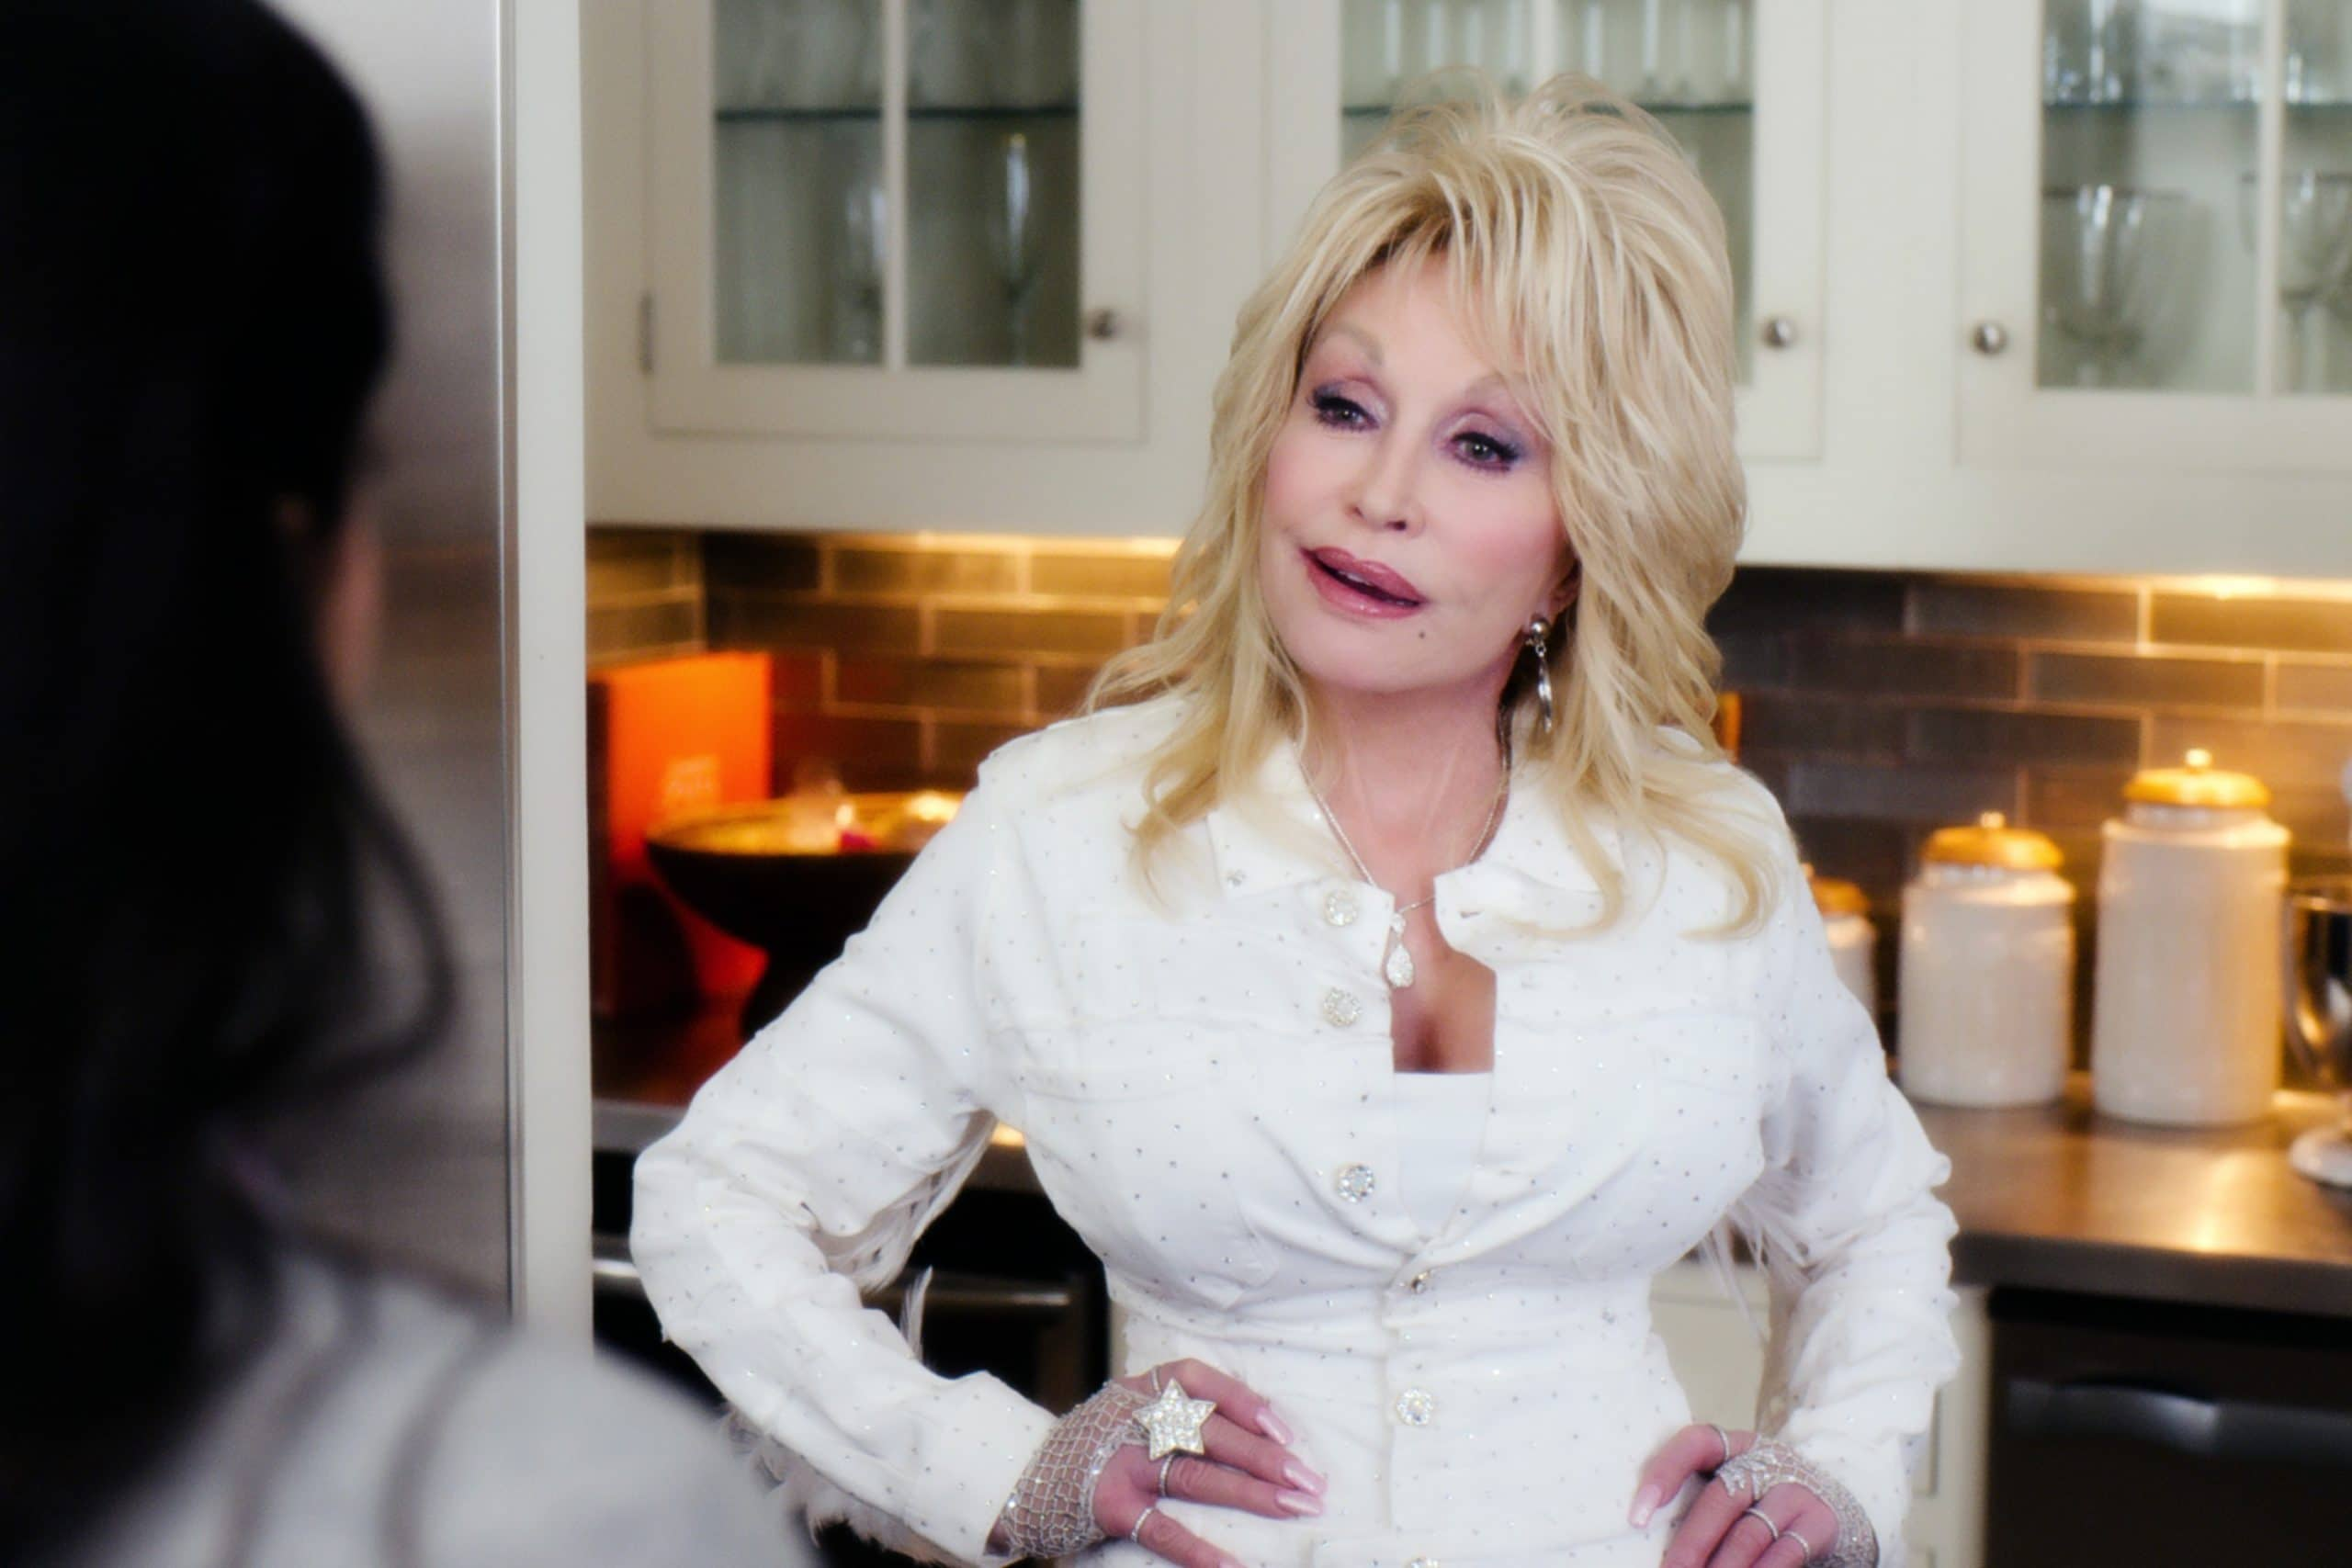 CHRISTMAS ON THE SQUARE, (aka DOLLY PARTONS CHRISTMAS ON THE SQUARE), Dolly Parton, 2020.